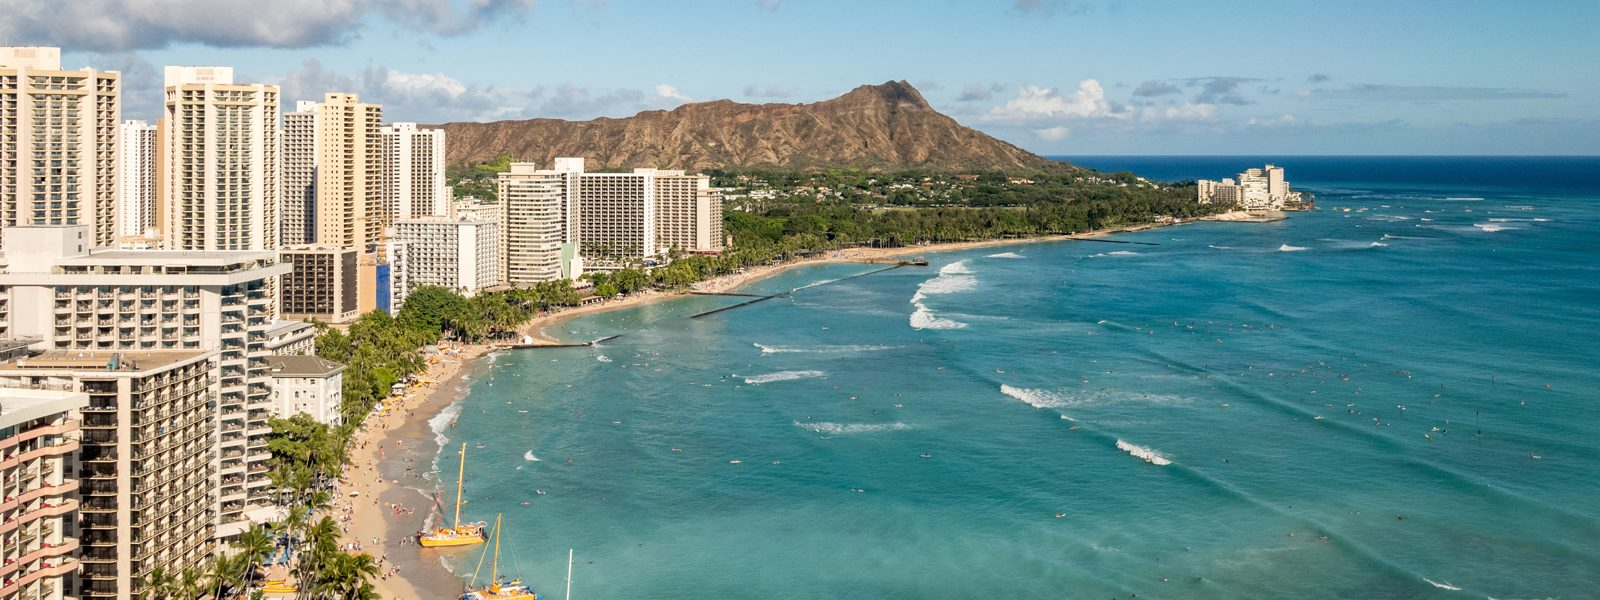 OAHU WEBCAMS & WEATHER